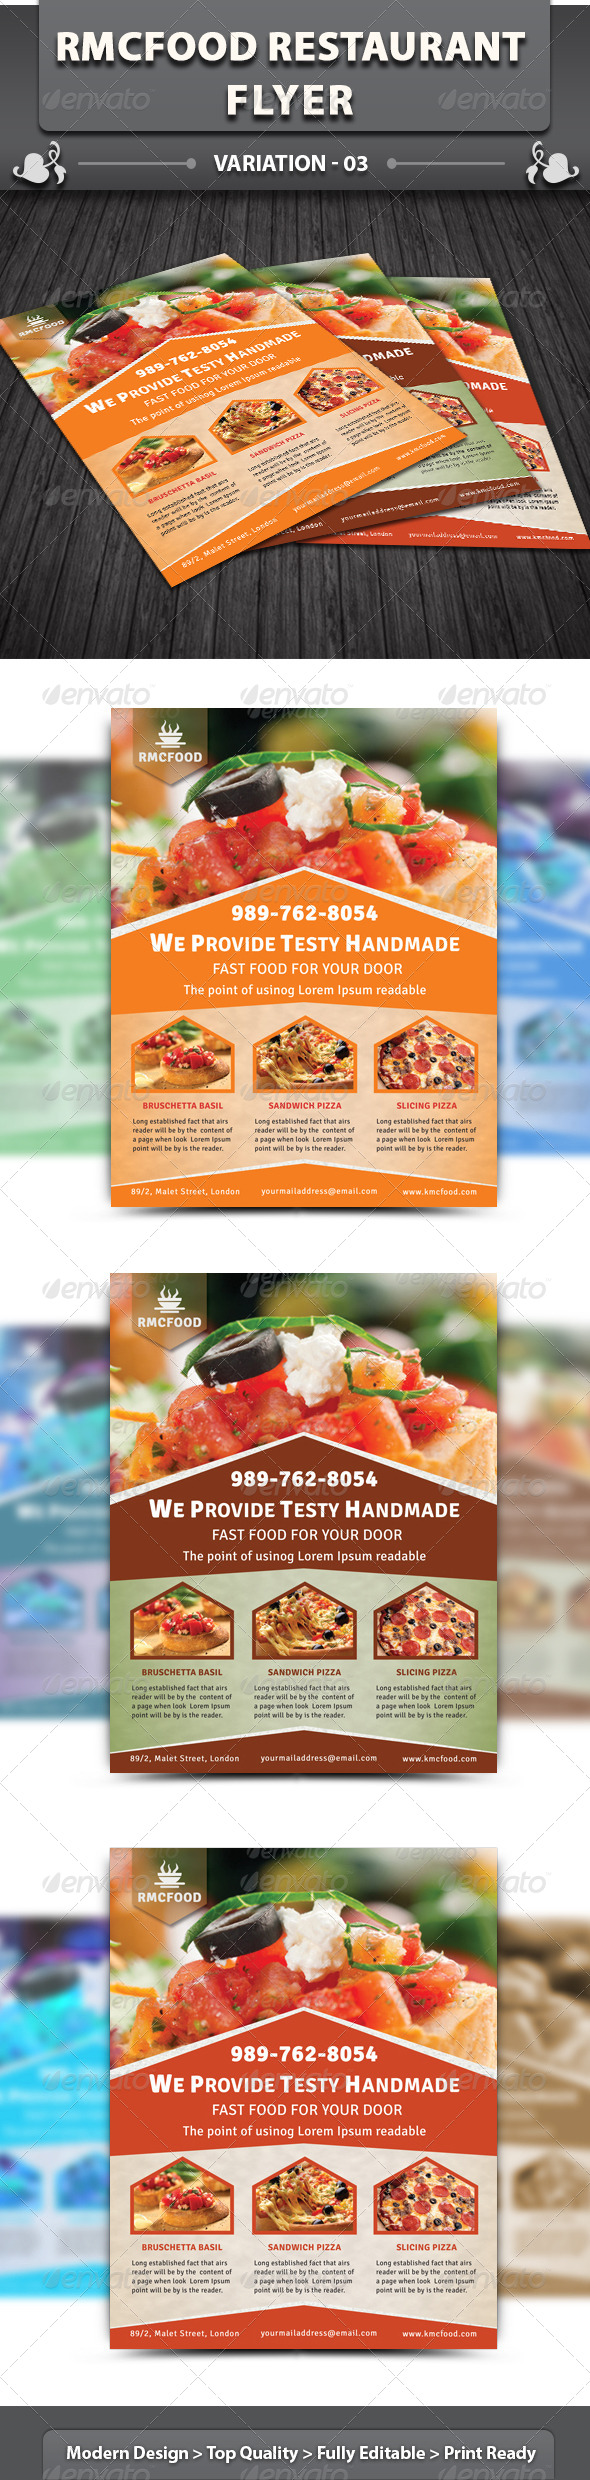 RMC Food Restaurant Flyer - Restaurant Flyers